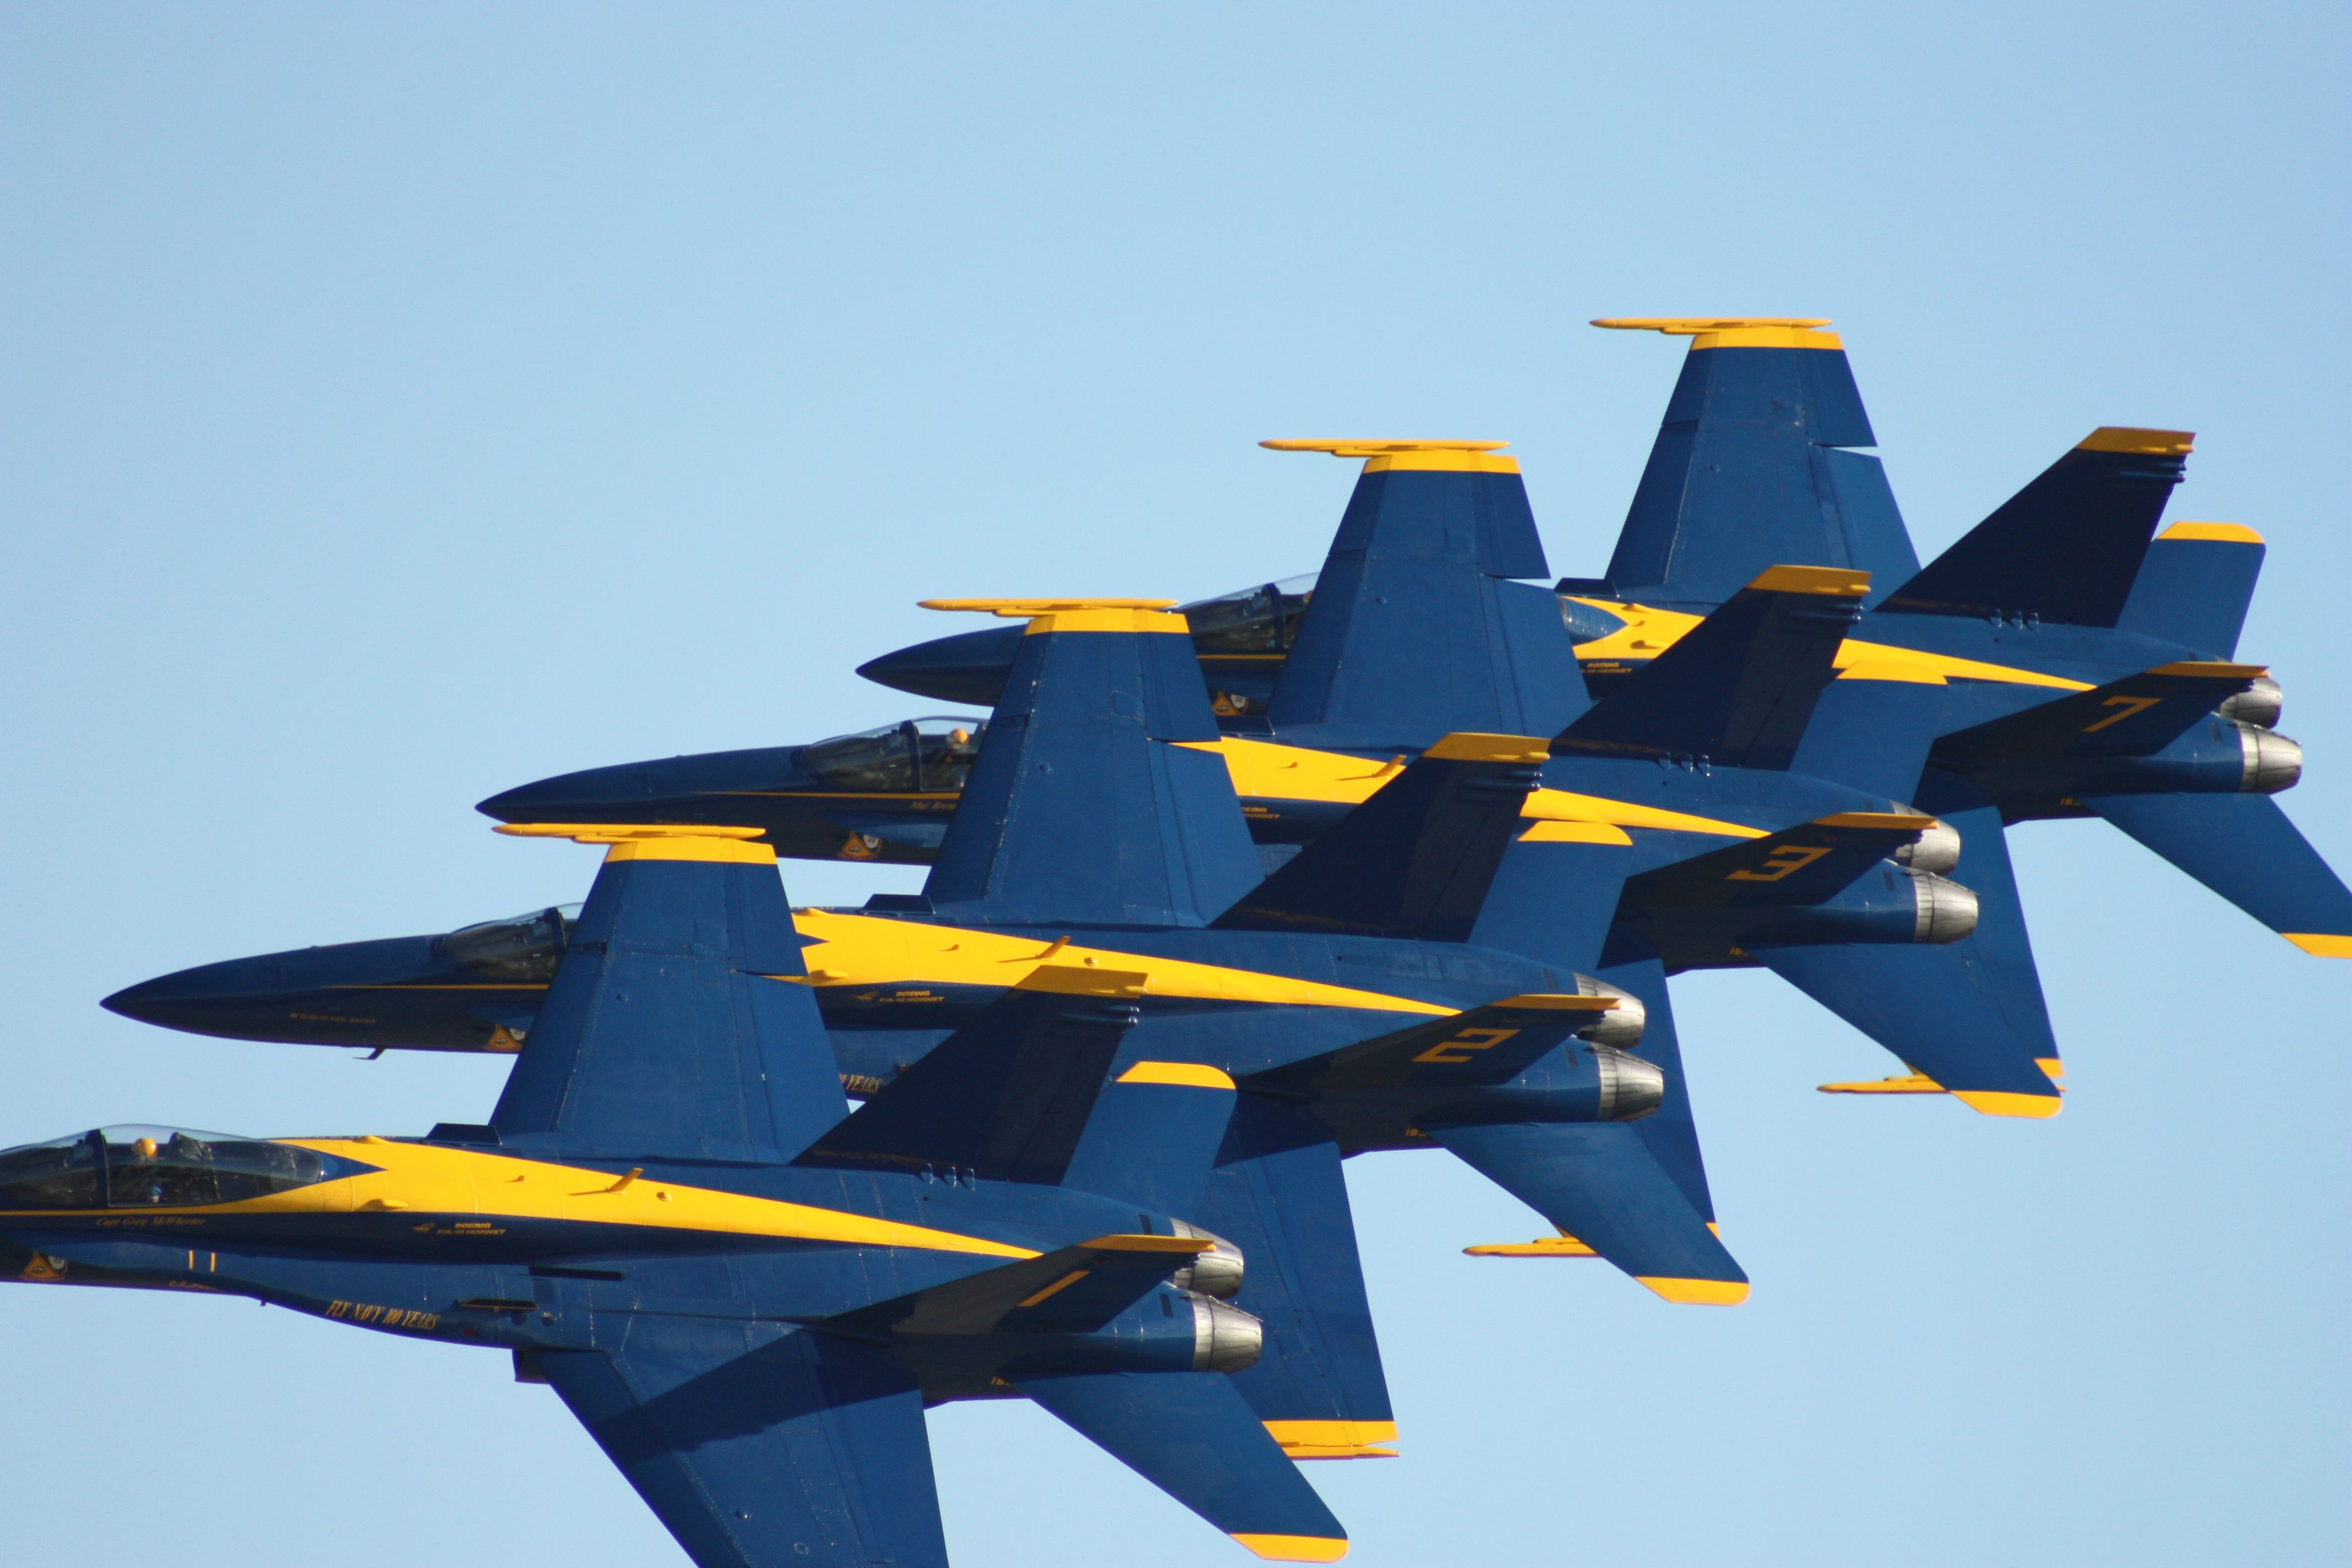 Watching the Blue Angels practice in Pensacola Florida